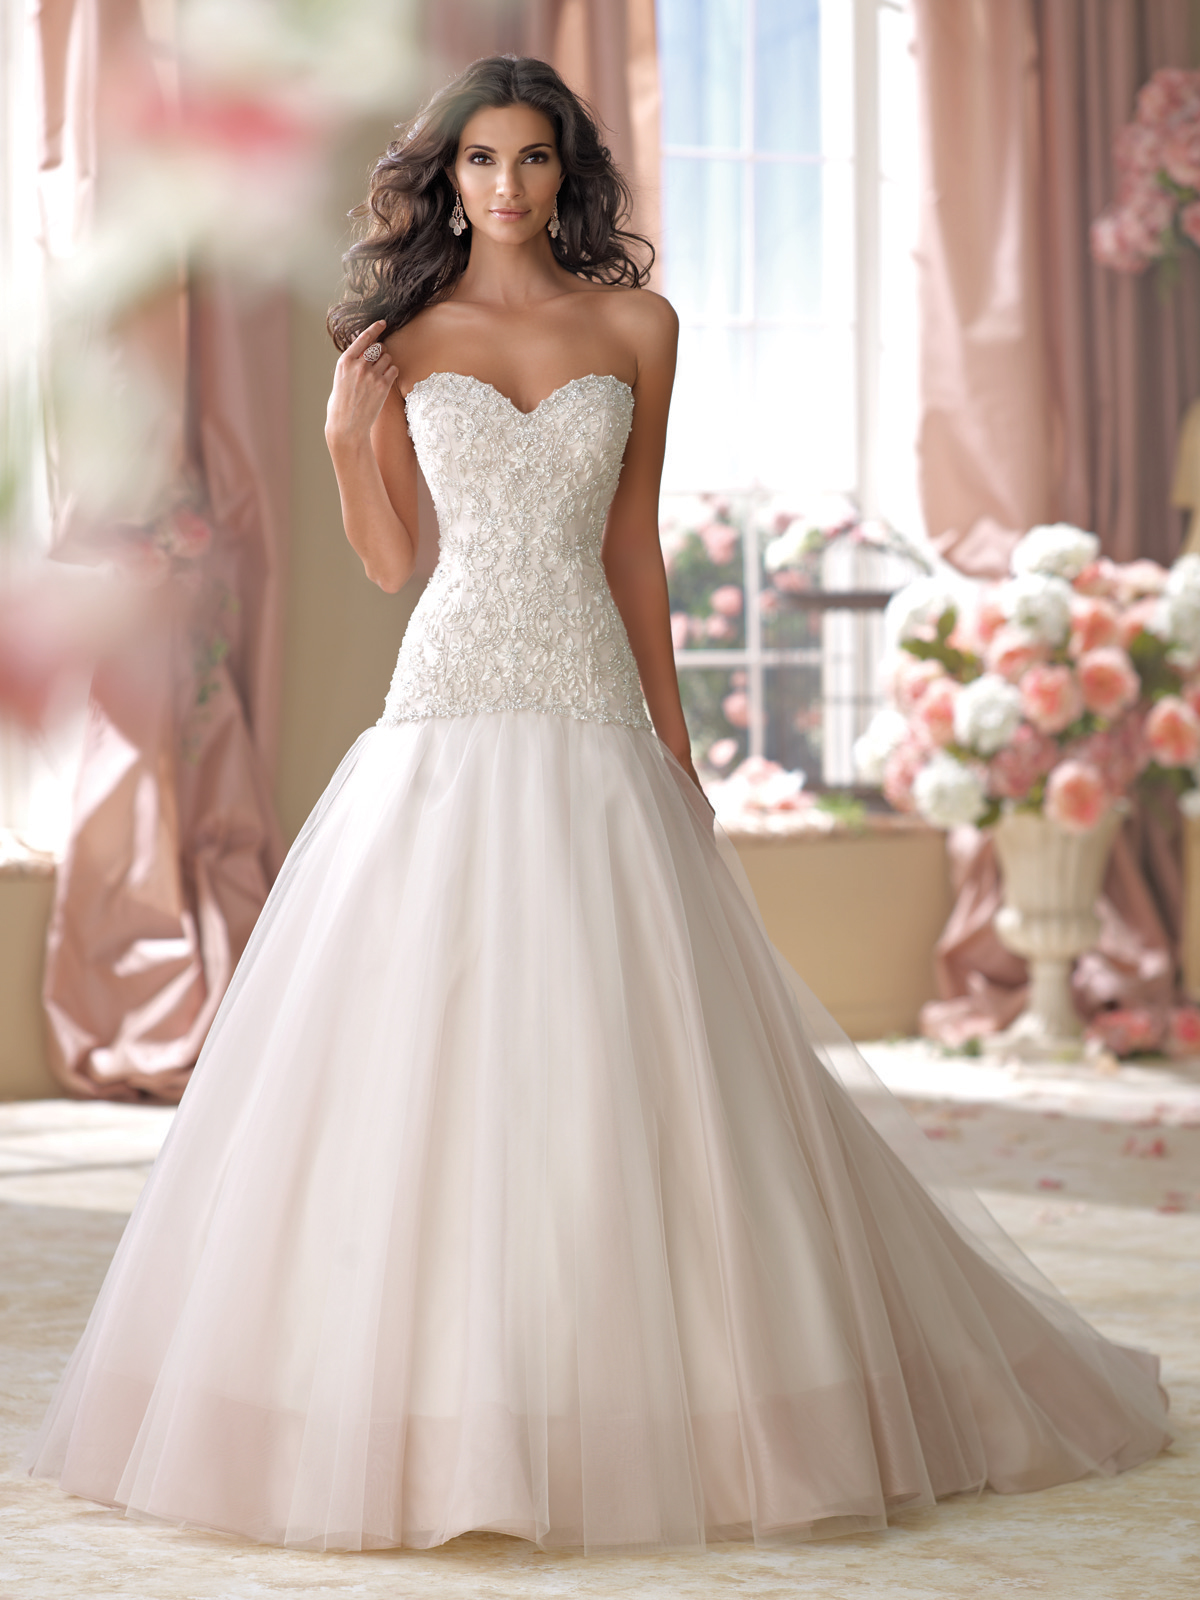 David tutera mon cheri bridal gowns cora 114270 the wedding loft david tutera mon cheri bridal gowns cora 114270 junglespirit Choice Image